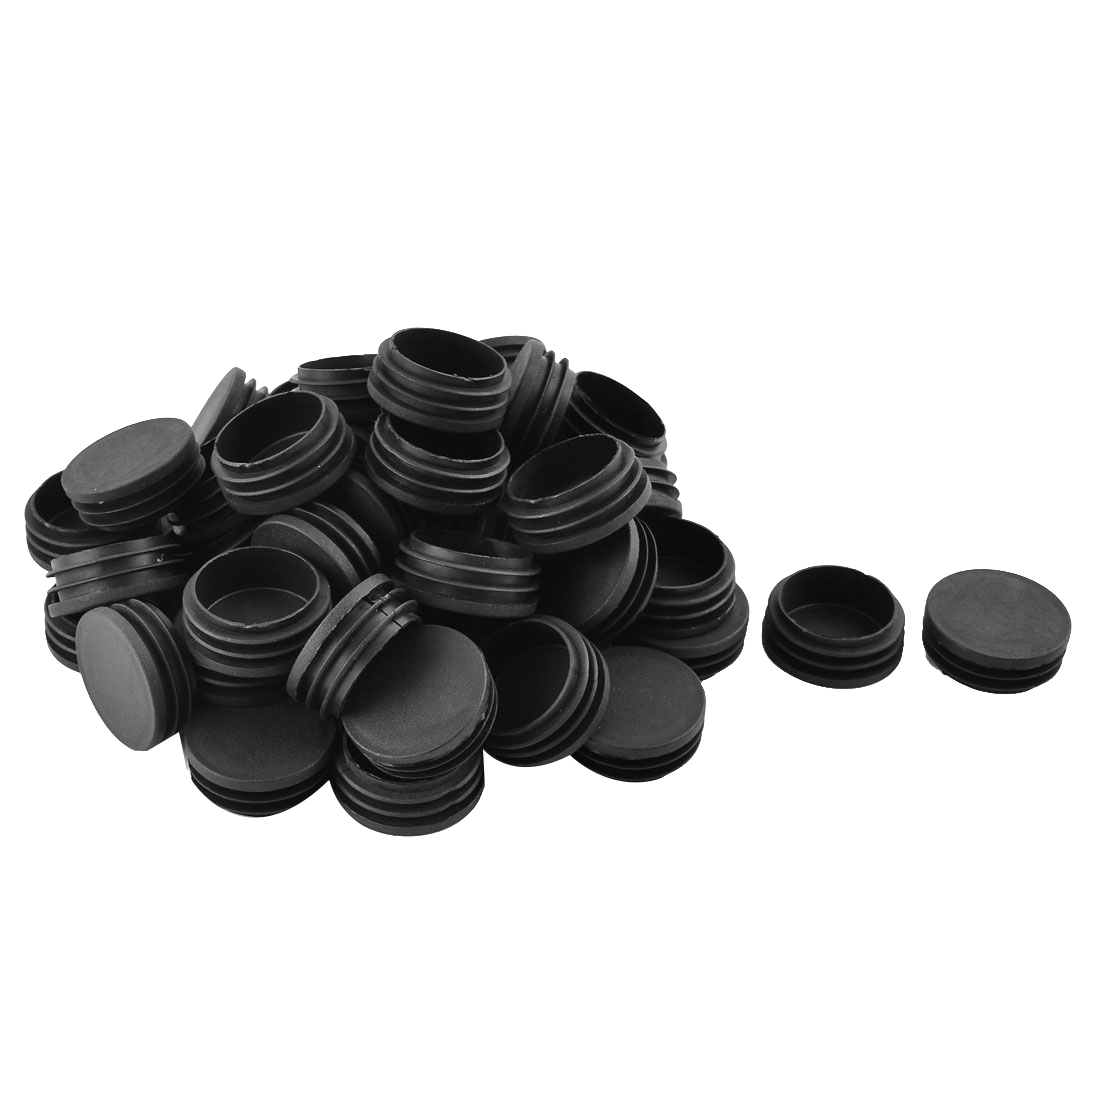 Home Plastic Cylindrical Shaped Furniture Chair Leg Feet Tube Insert Black 50 Pcs